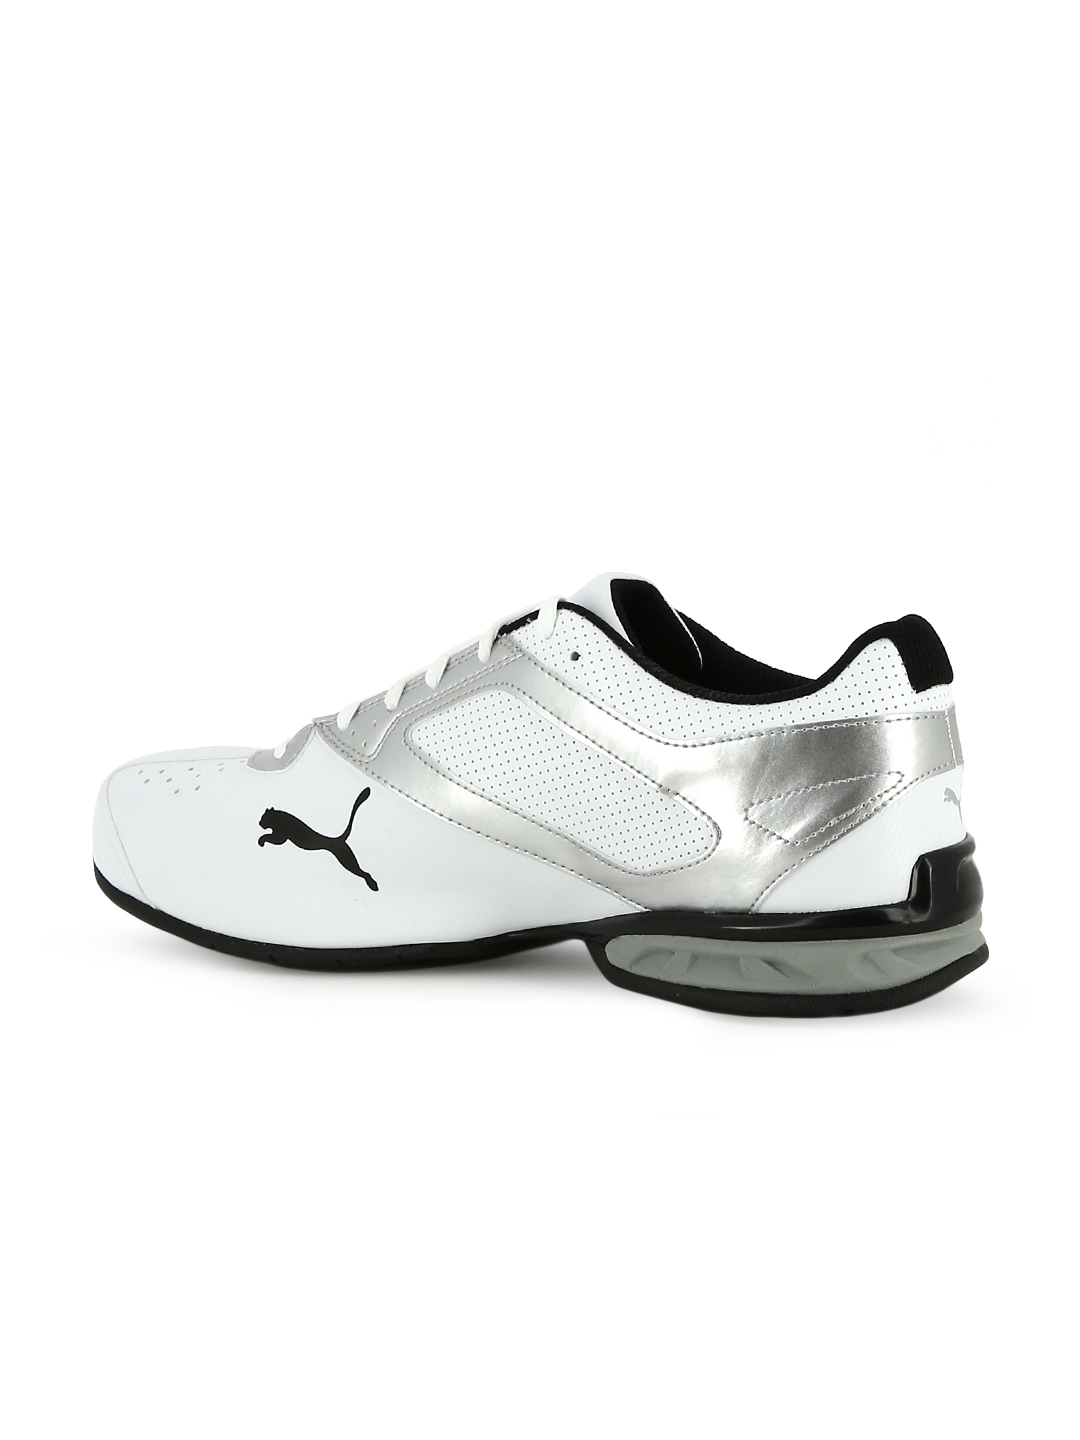 Buy Puma Men White Tazon 6 FM Running Shoes - Sports Shoes for Men ... 439198241